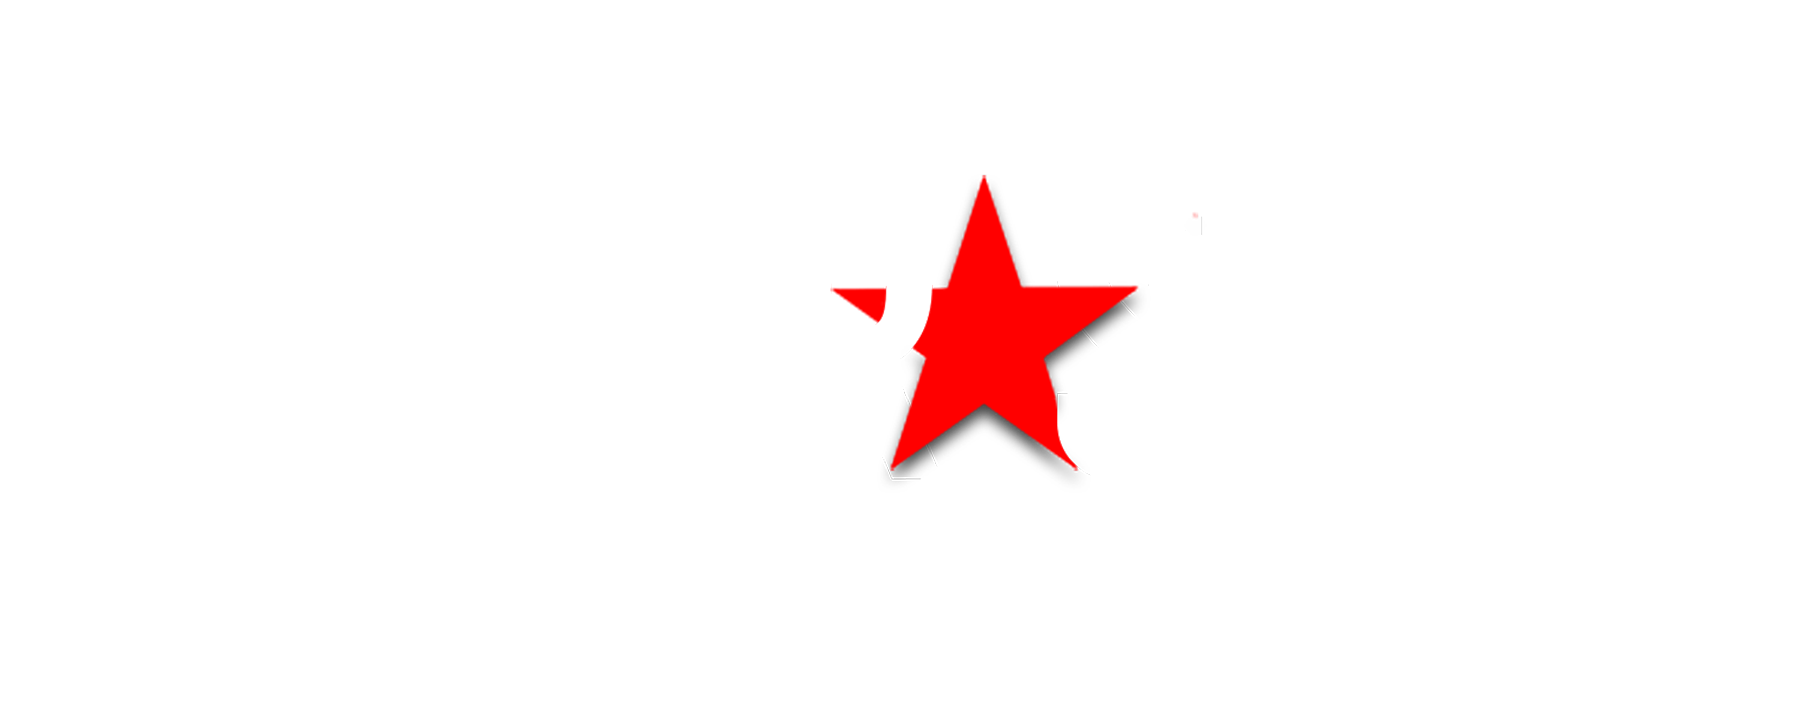 CenterStage Logo-Red-Shadow 2019 copy copySM.png